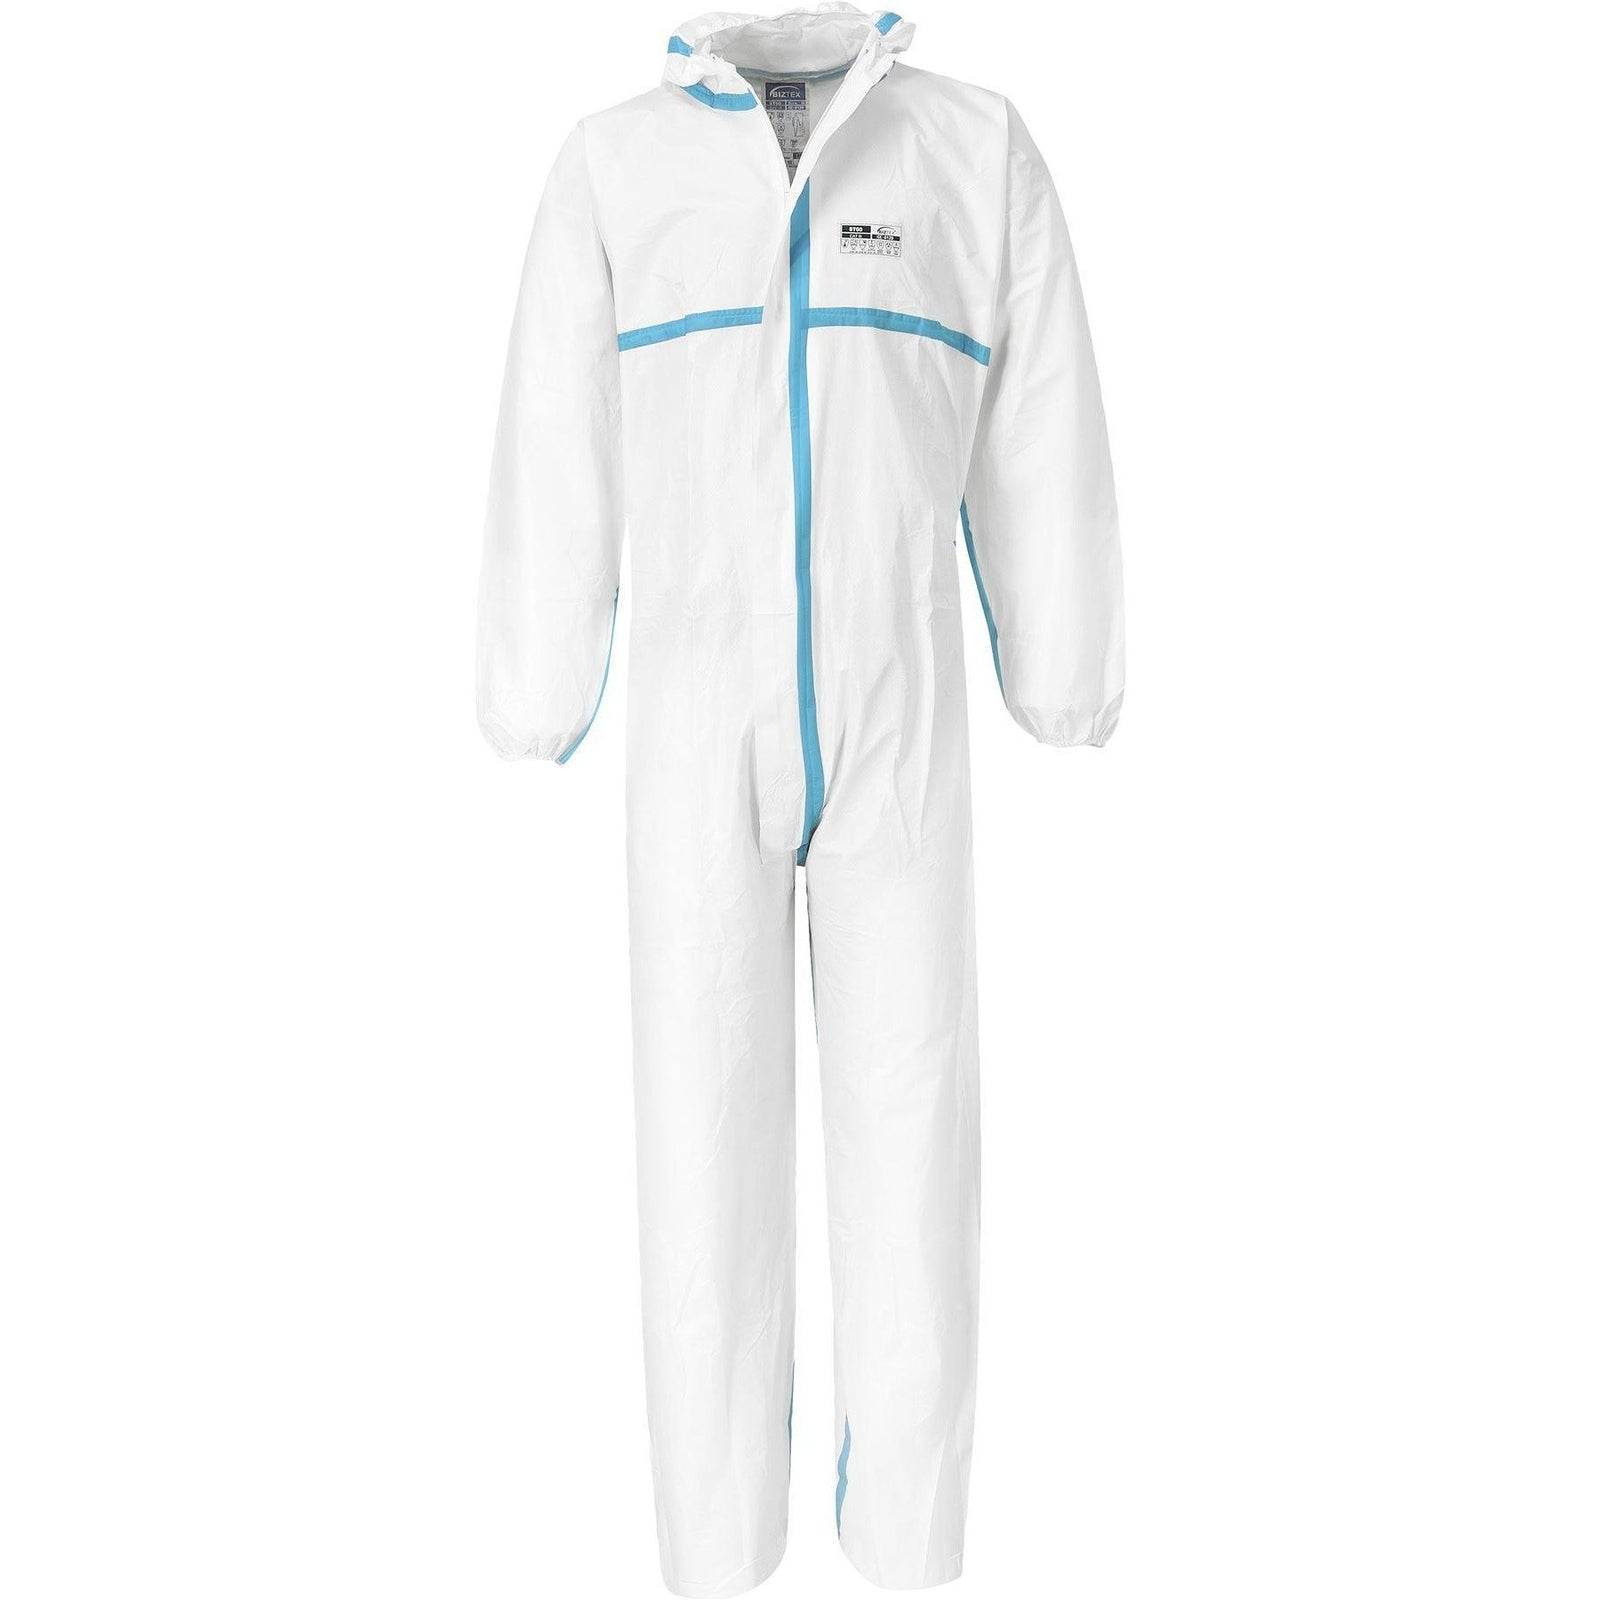 Portwest BizTex Microporous 4/5/6 Coverall ST60 - reid outdoors